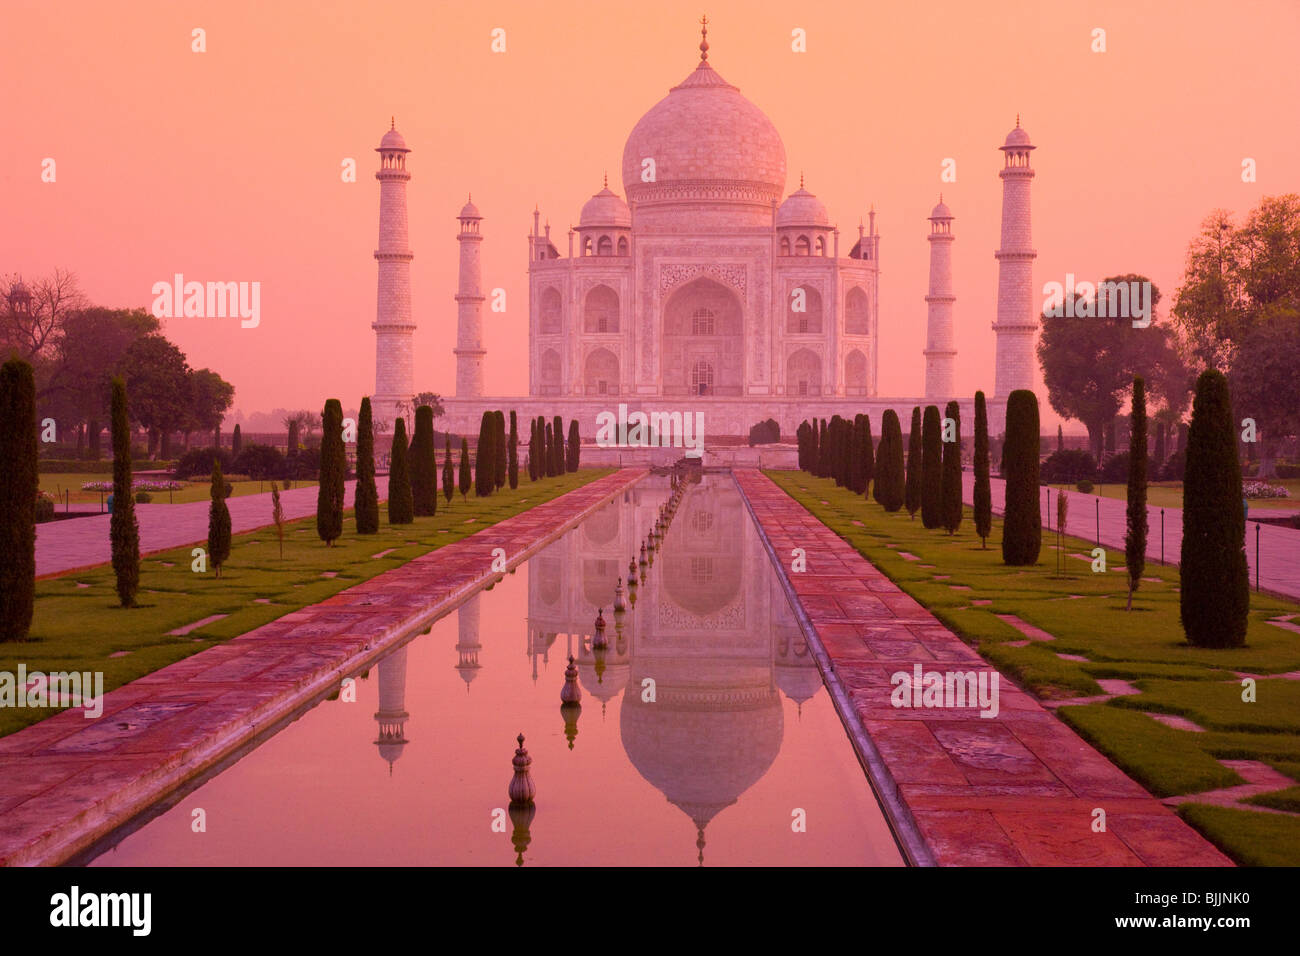 Taj Mahal, Agra, India, UNESCO World Heritage Site, Built in 1631 by Shal Jahan for wife Mumtaz Mahal - Stock Image